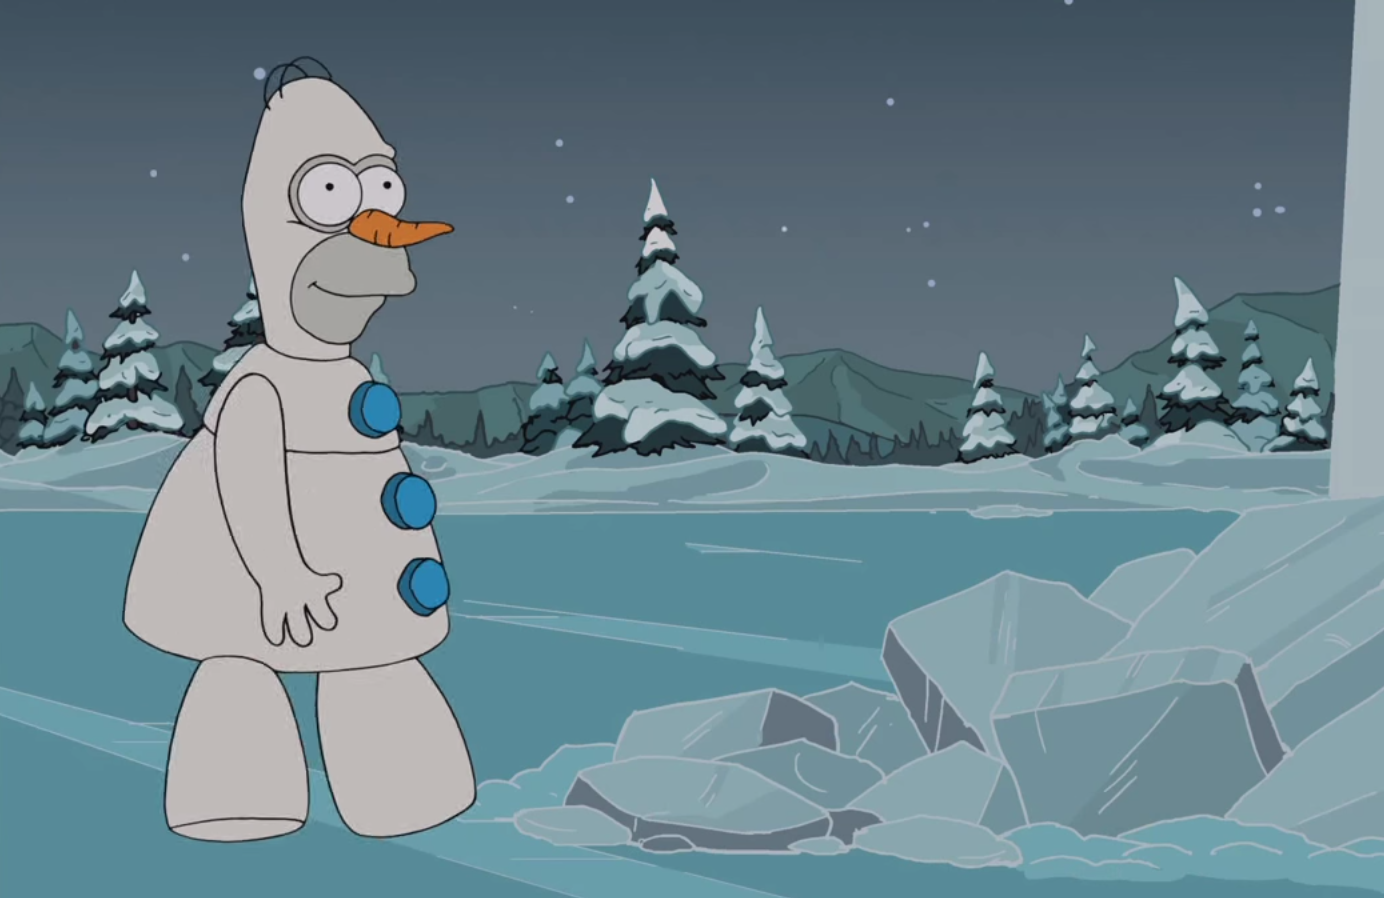 The-Simpsons-Homer-Olaf-Frozen